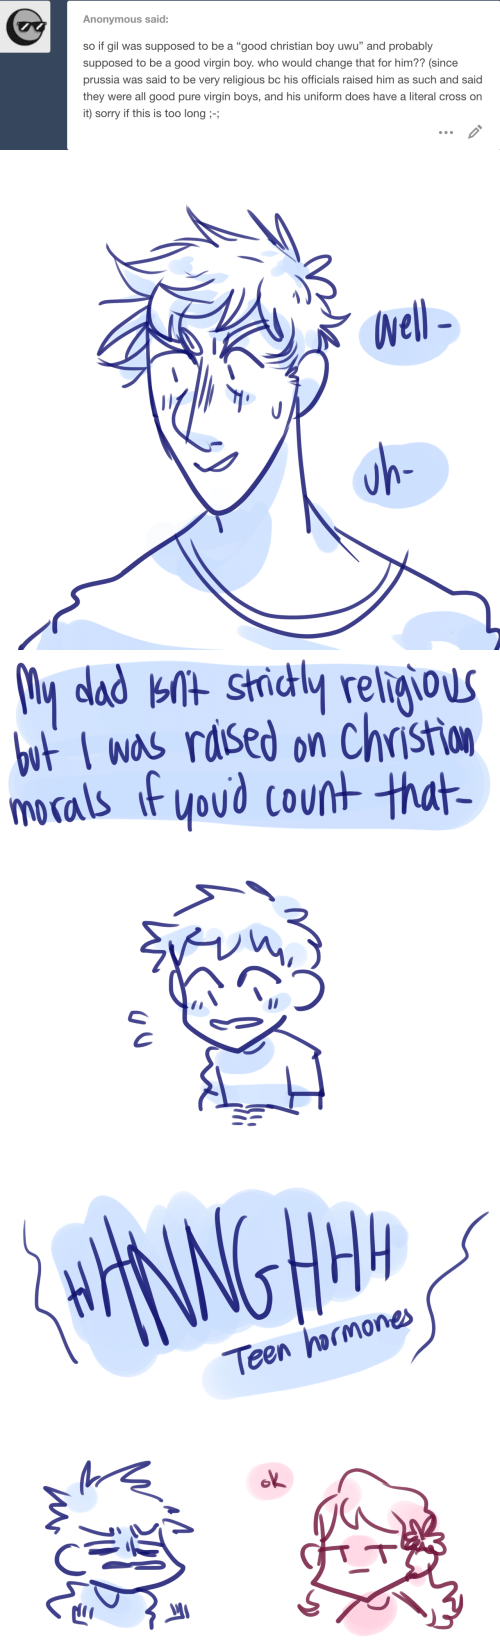 "Dad, Sorry, and Virgin: Anonymous said:  so if gil was supposed to be a ""good christian boy uwu"" and probably  supposed to be a good virgin boy. who would change that for him?? (since  prussia was said to be very religious bc his officials raised him as such and said  they were all good pure virgin boys, and his uniform does have a literal cross on  it) sorry if this is too long ;-;   Well-  uh-   My dad knt strictly religious  but I was raised on Christion  morals if you'd count that-   HHANNGHM  Teen hormones  ok  miono"